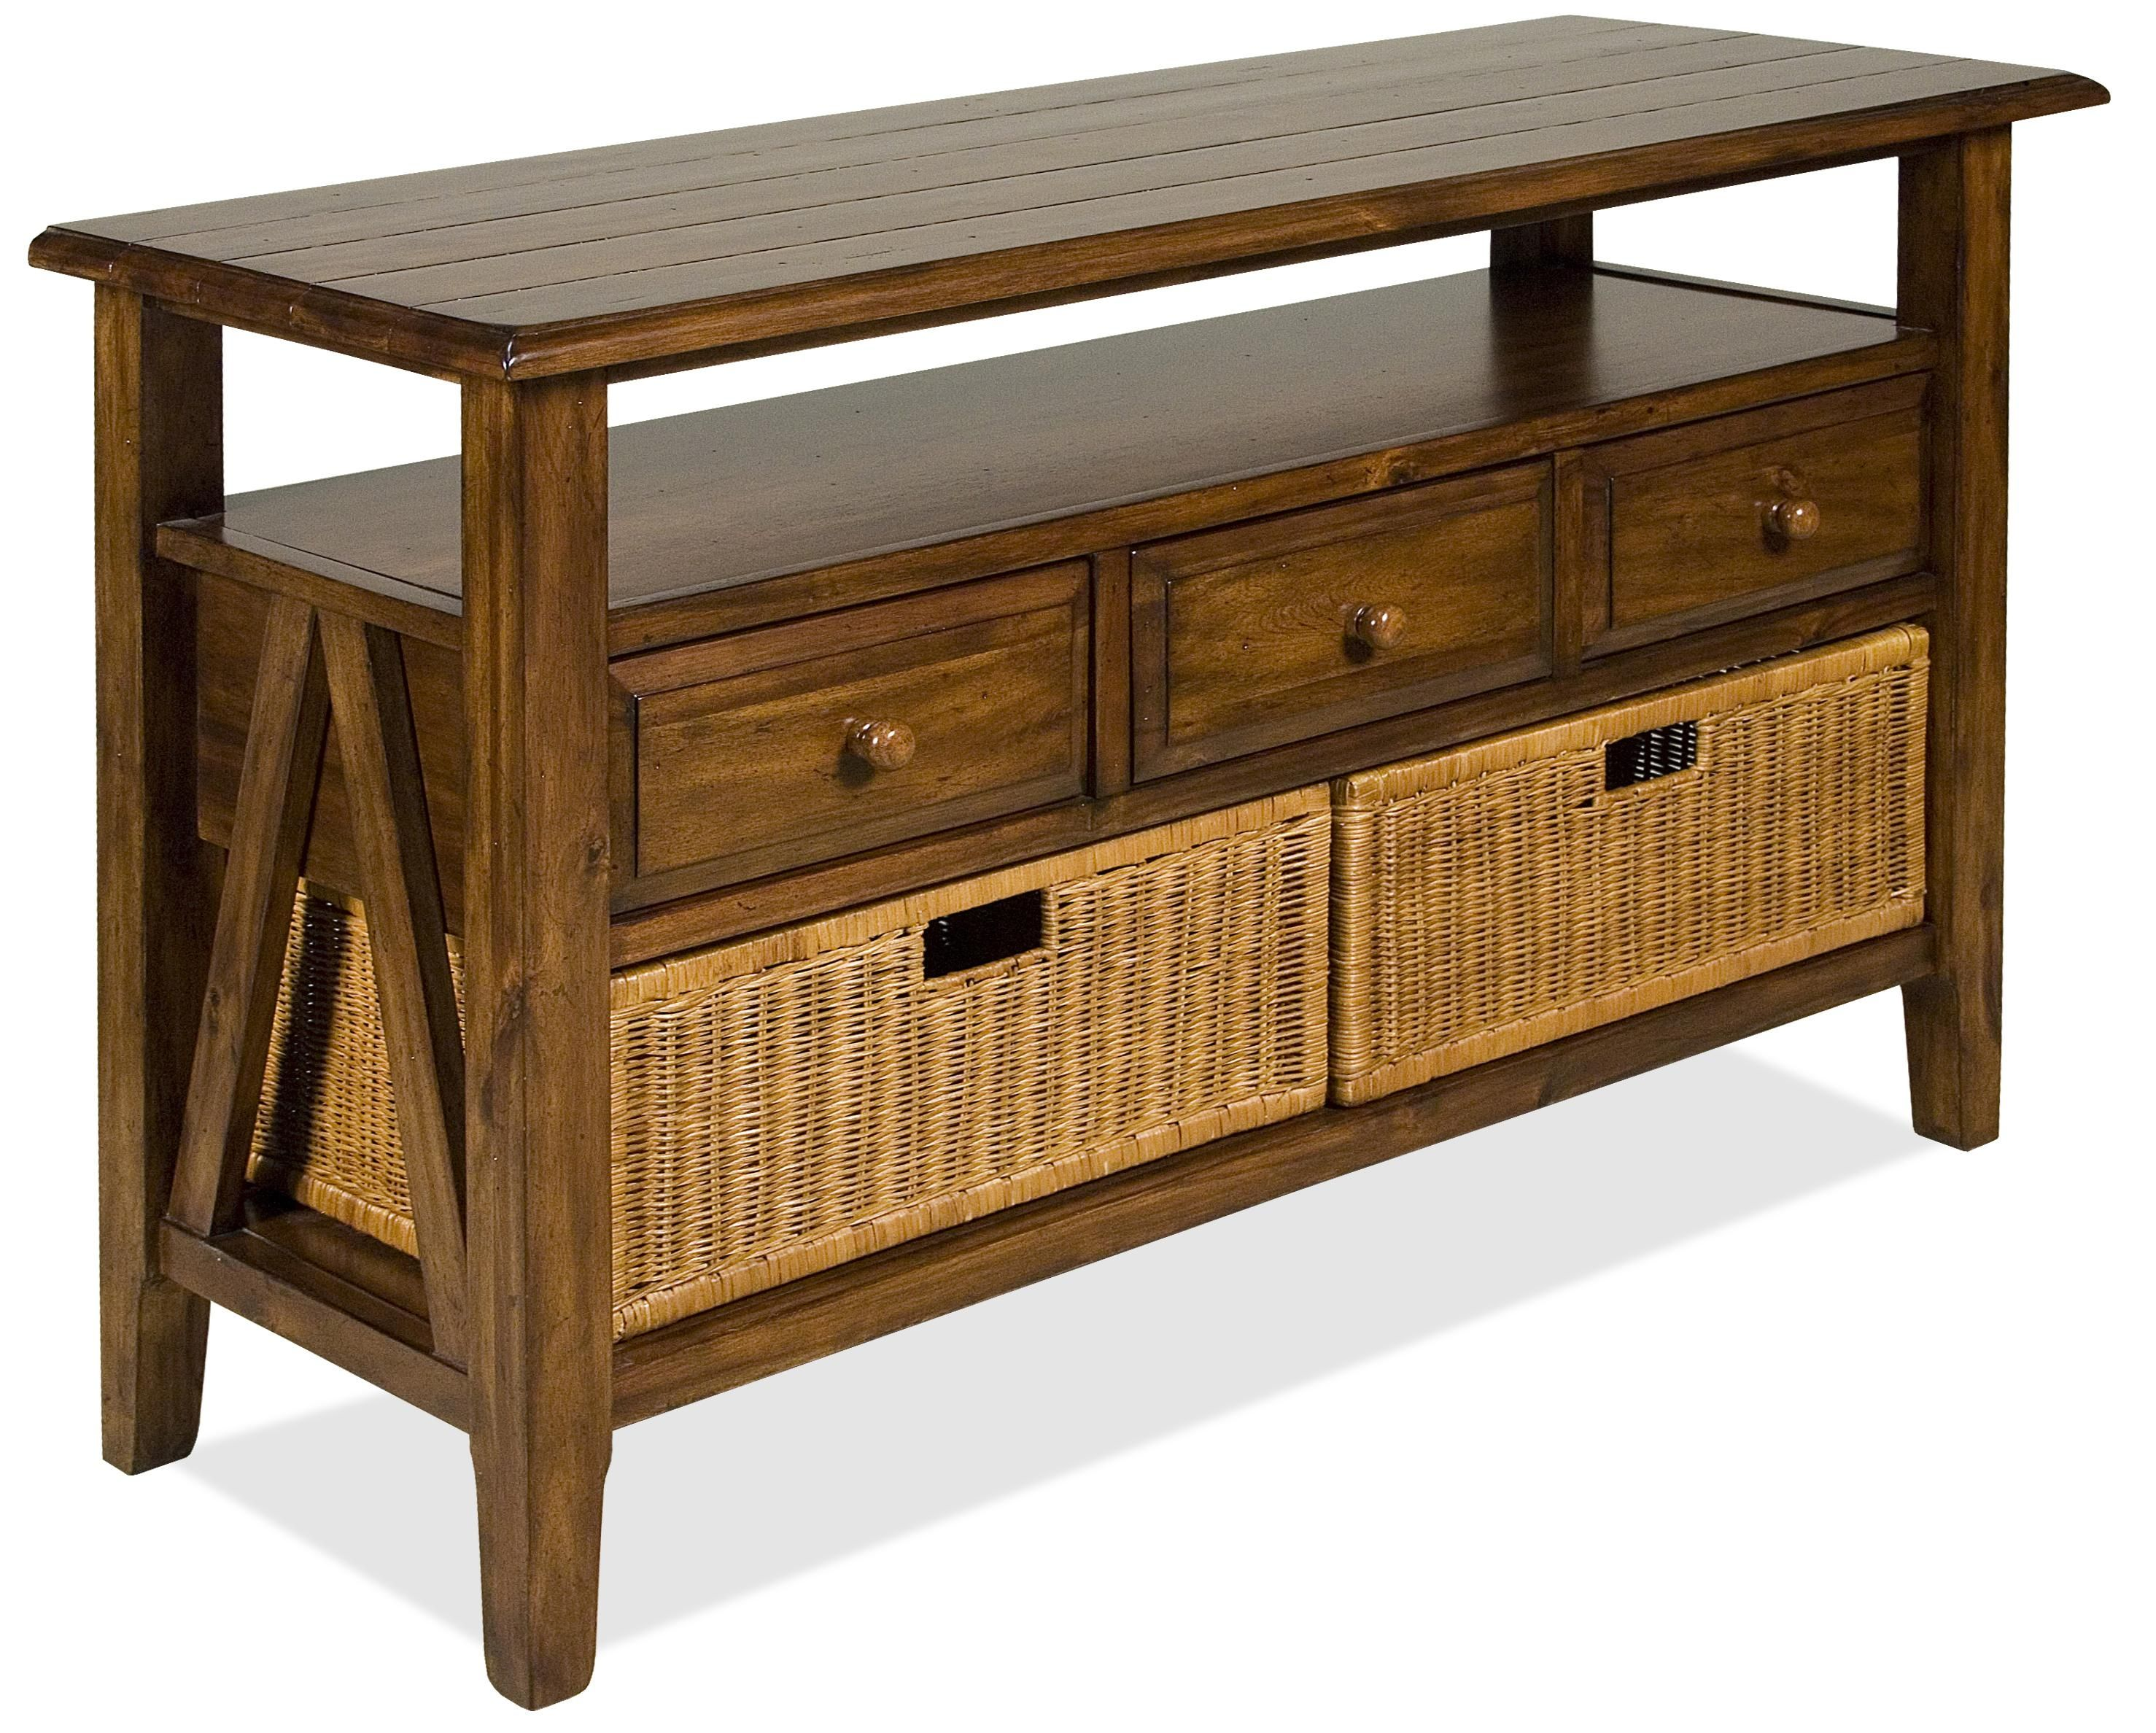 Amazing Sofa Tropical Style Rustic Table With Storage